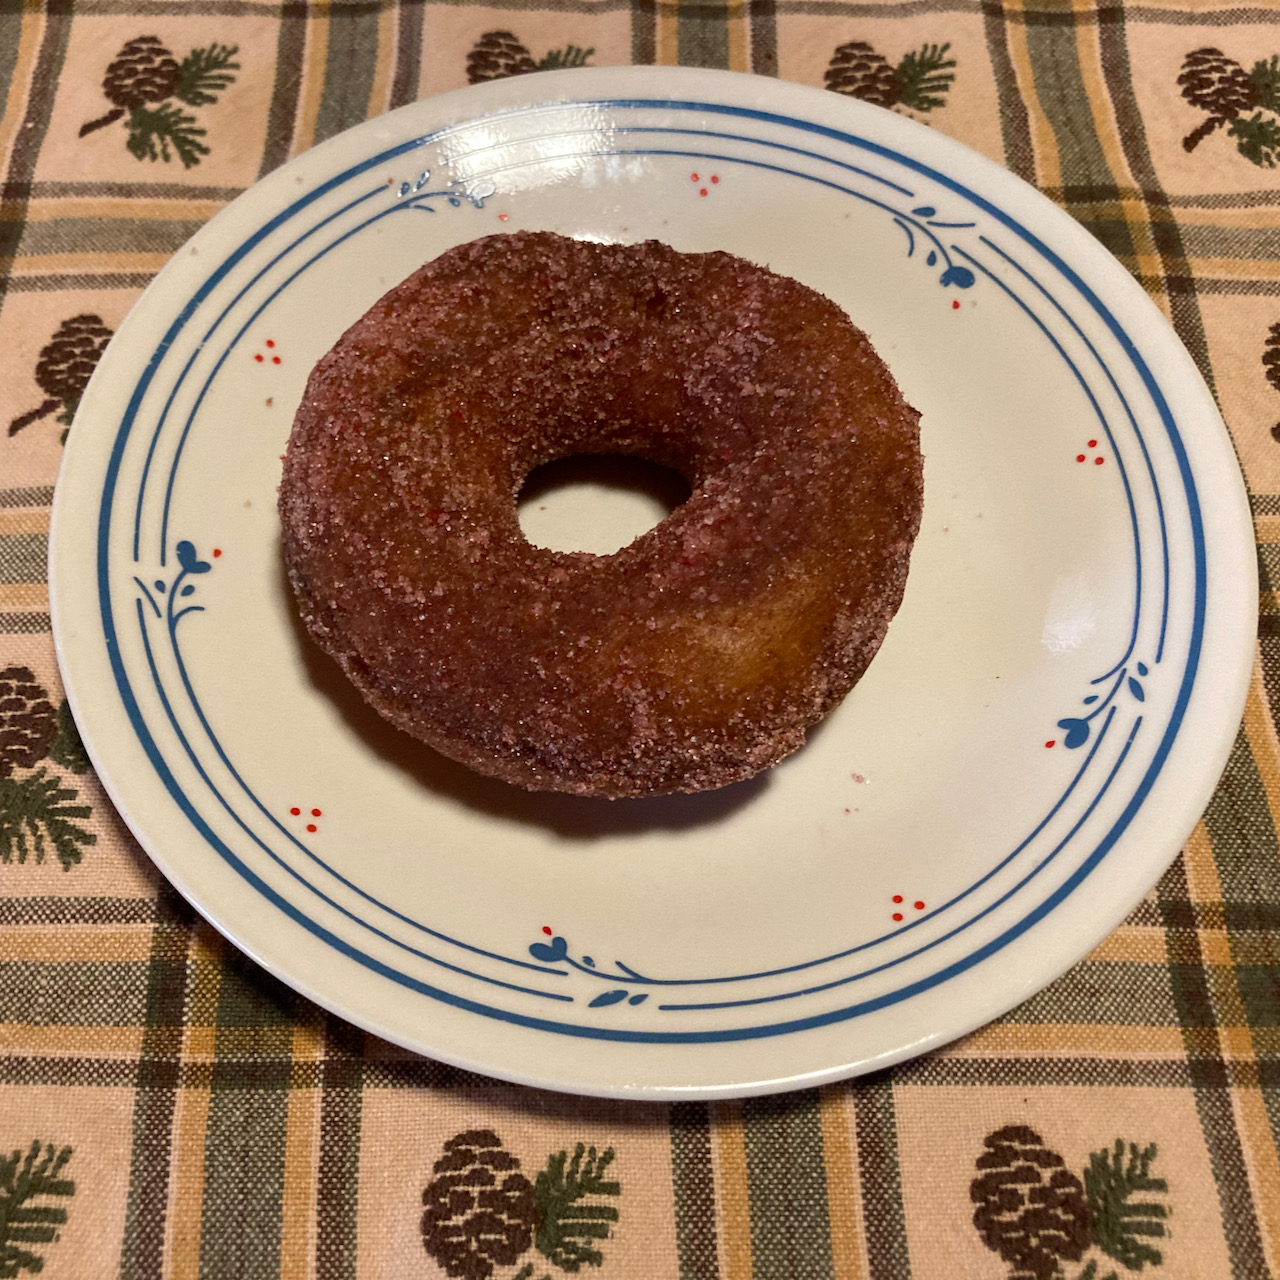 Donut on white plate.